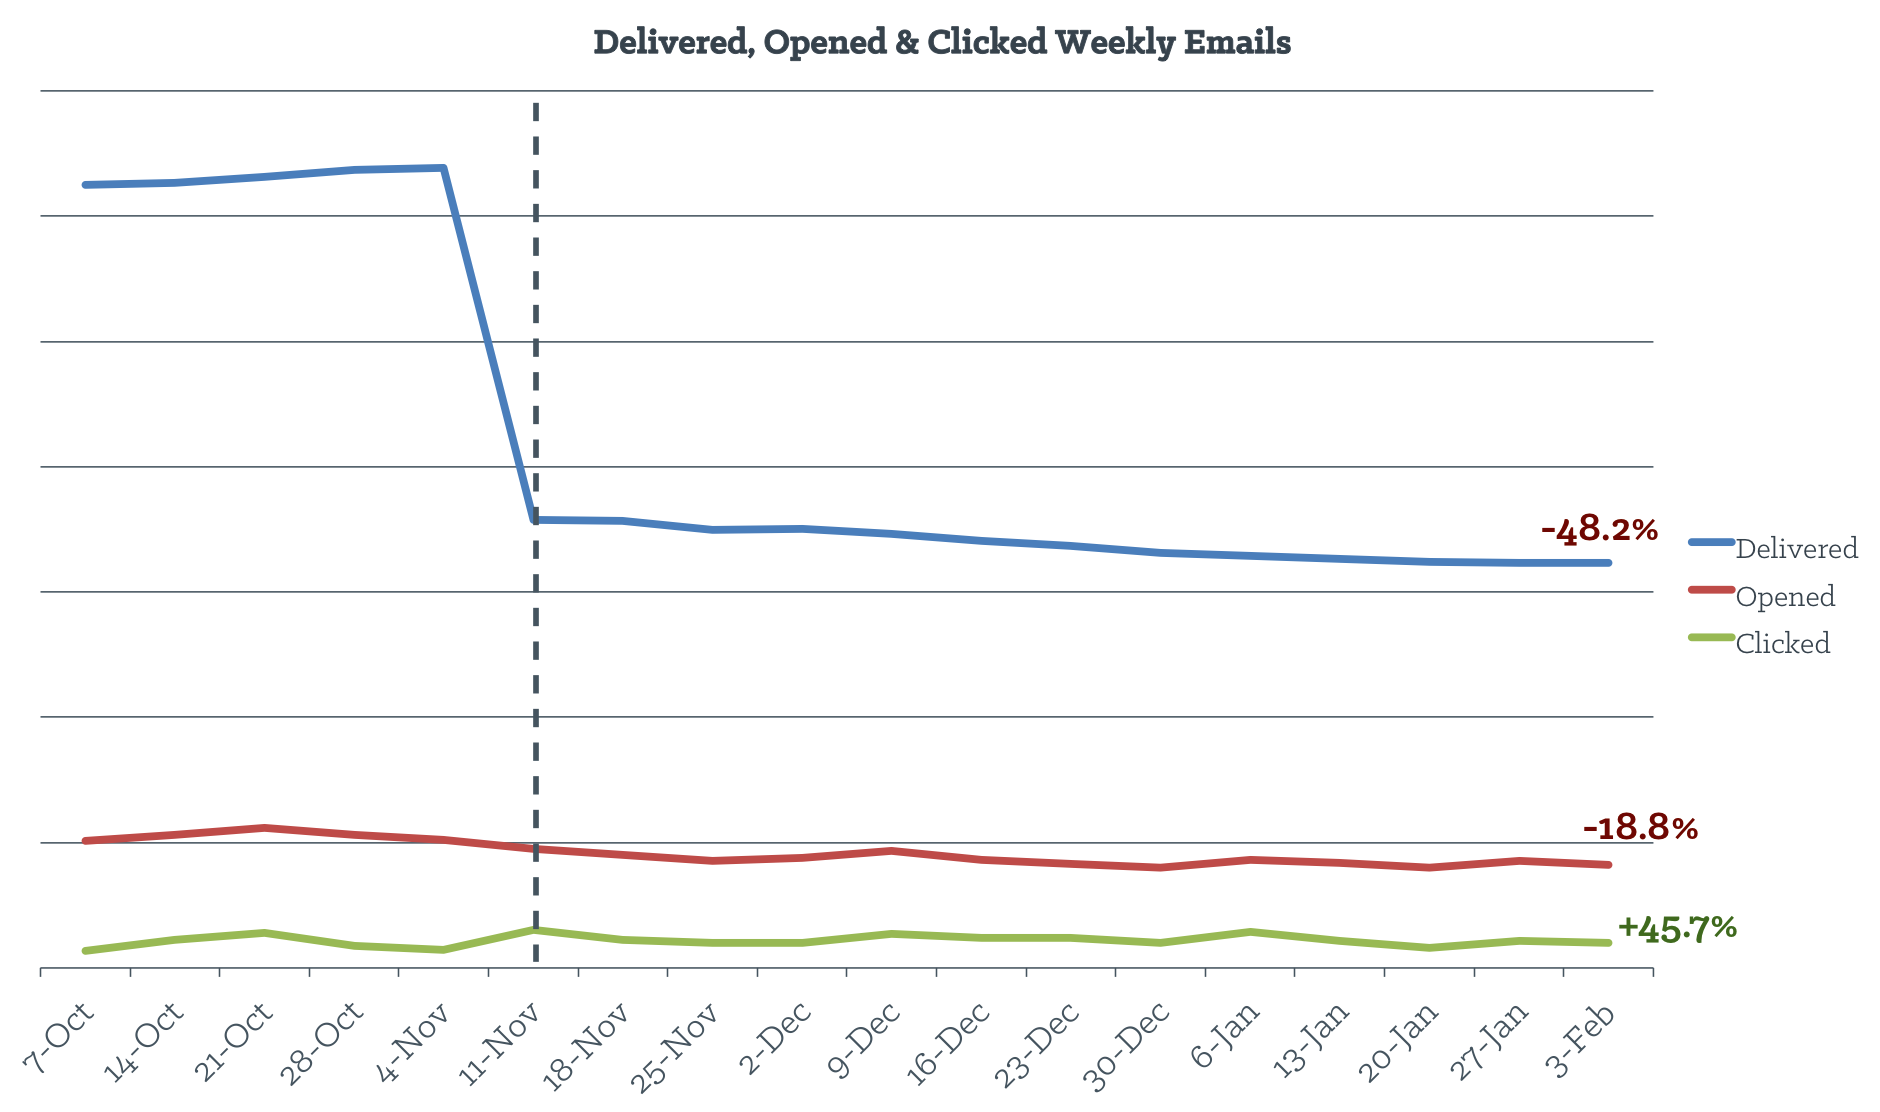 delivered_opened_clicked_weekly_emails.png